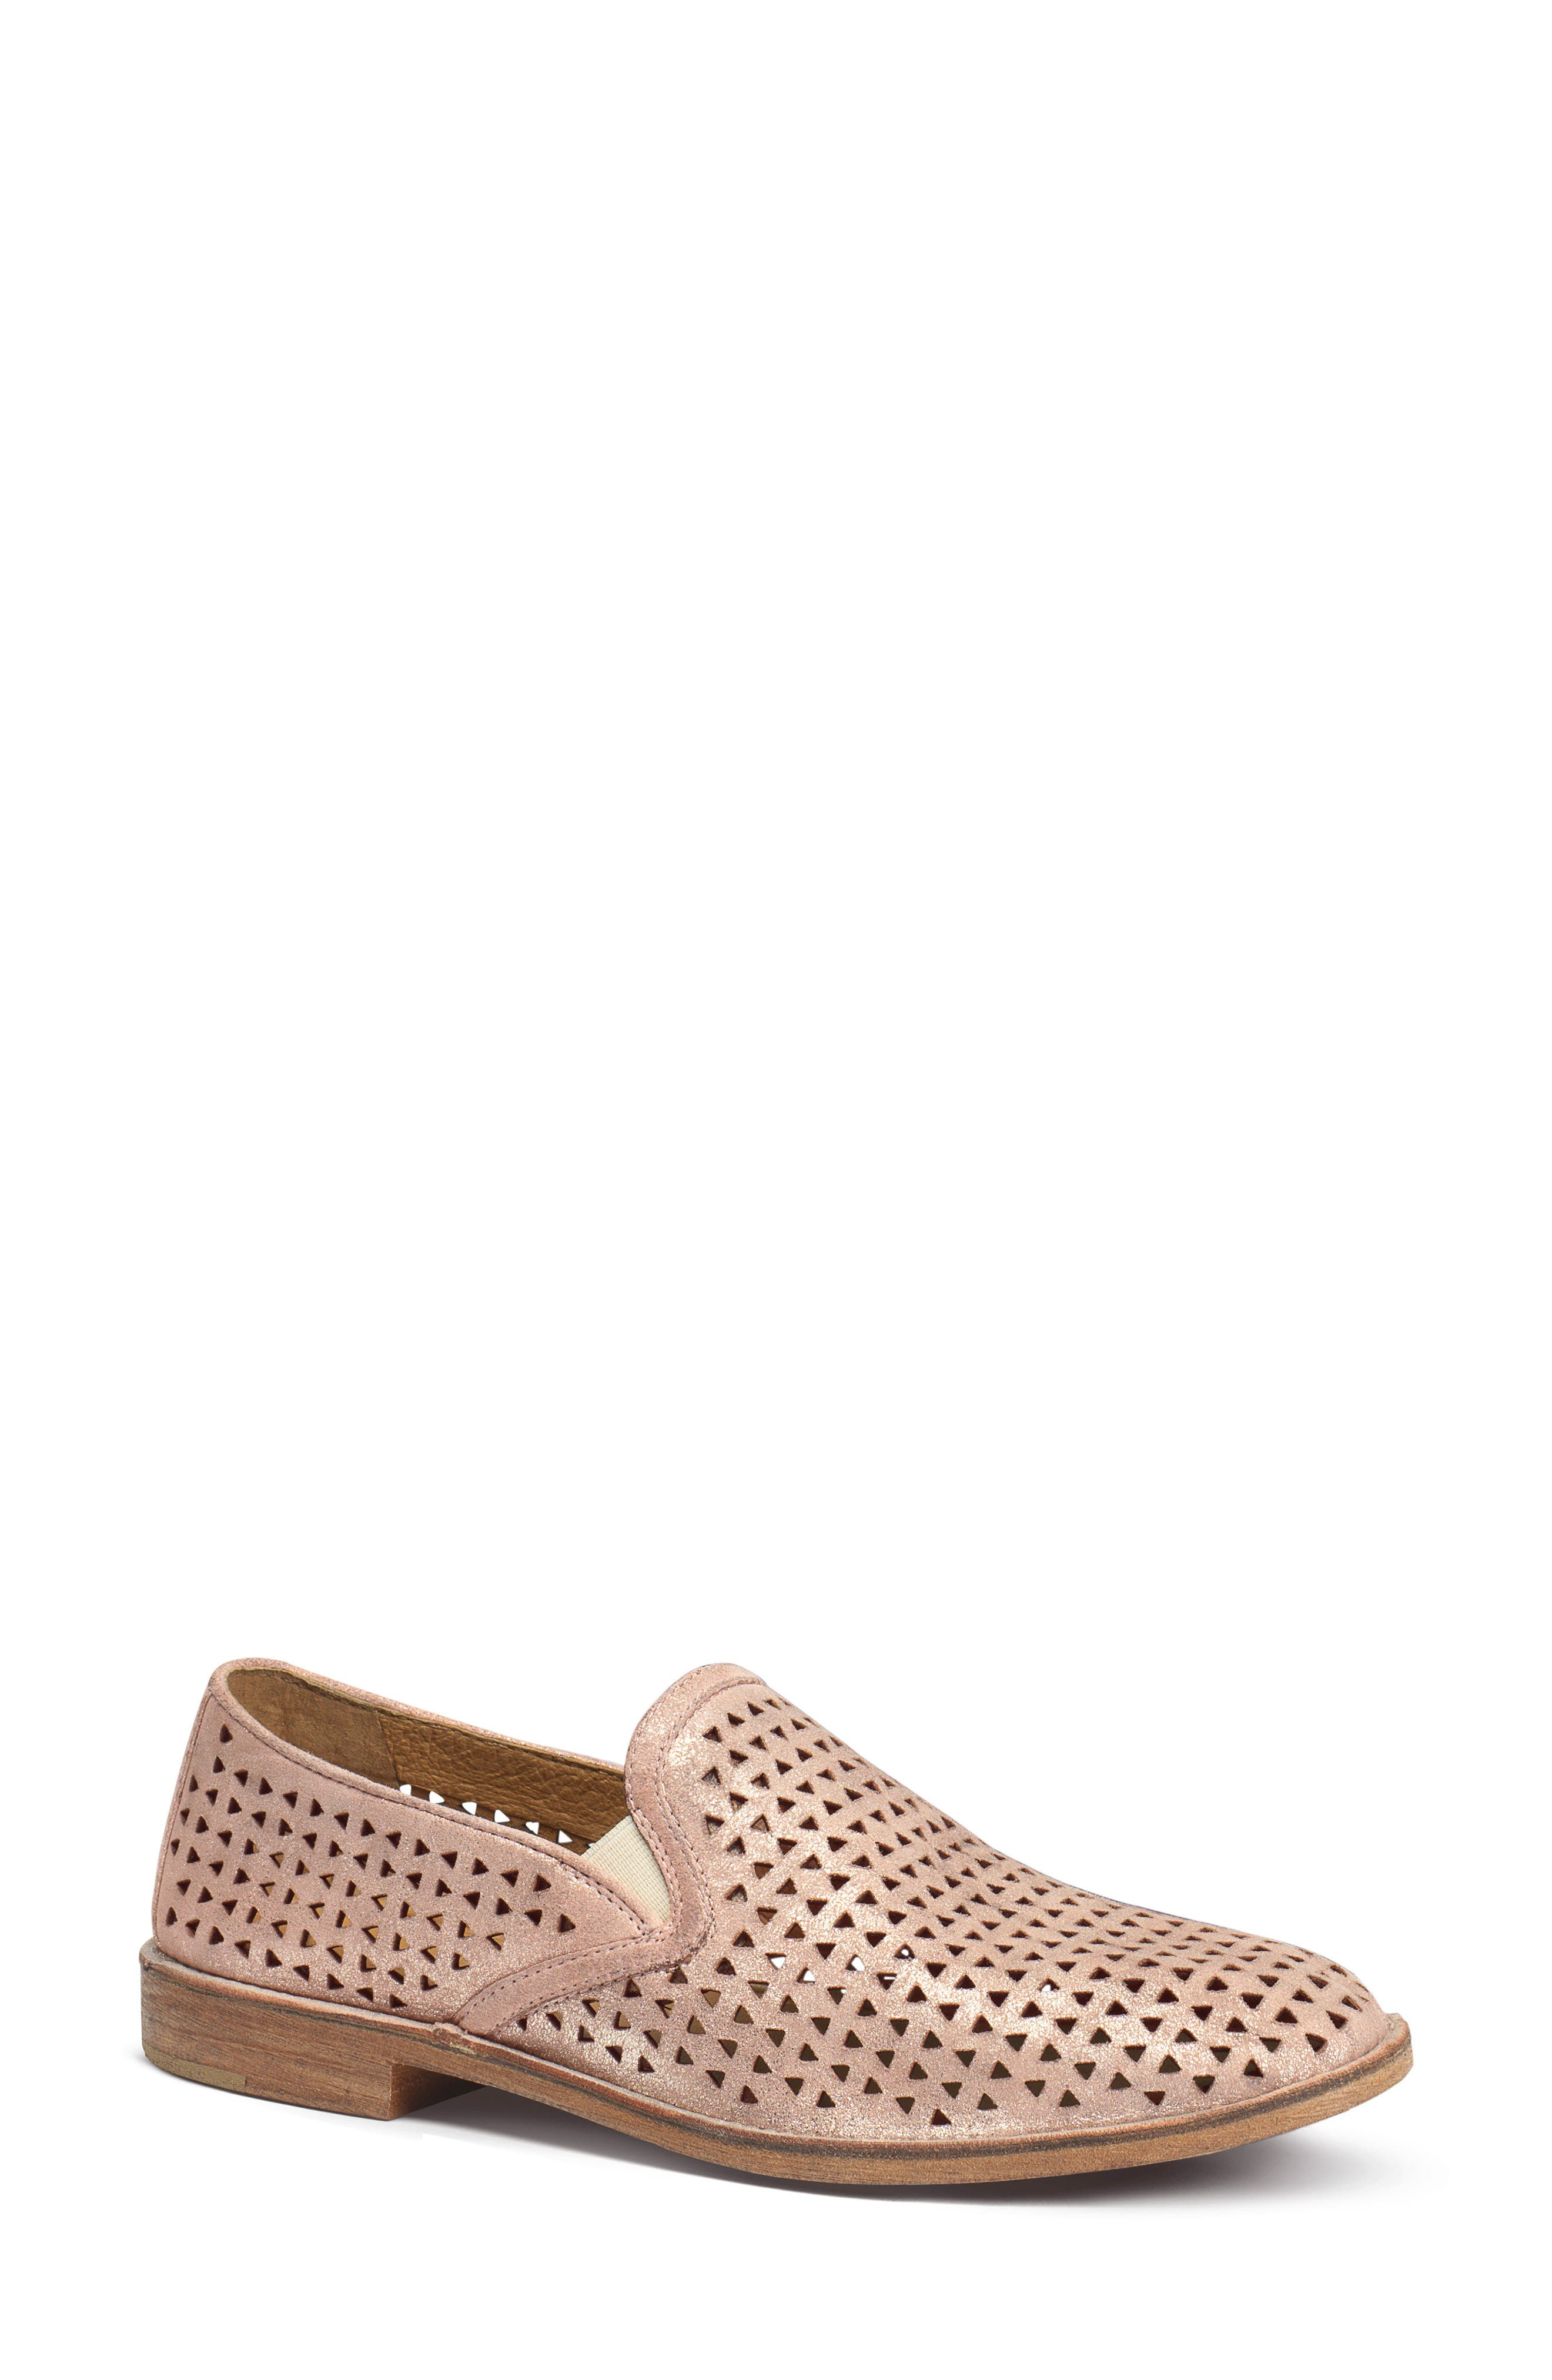 Trask Women's 'Ali' Perforated Loafer sIuJdXf